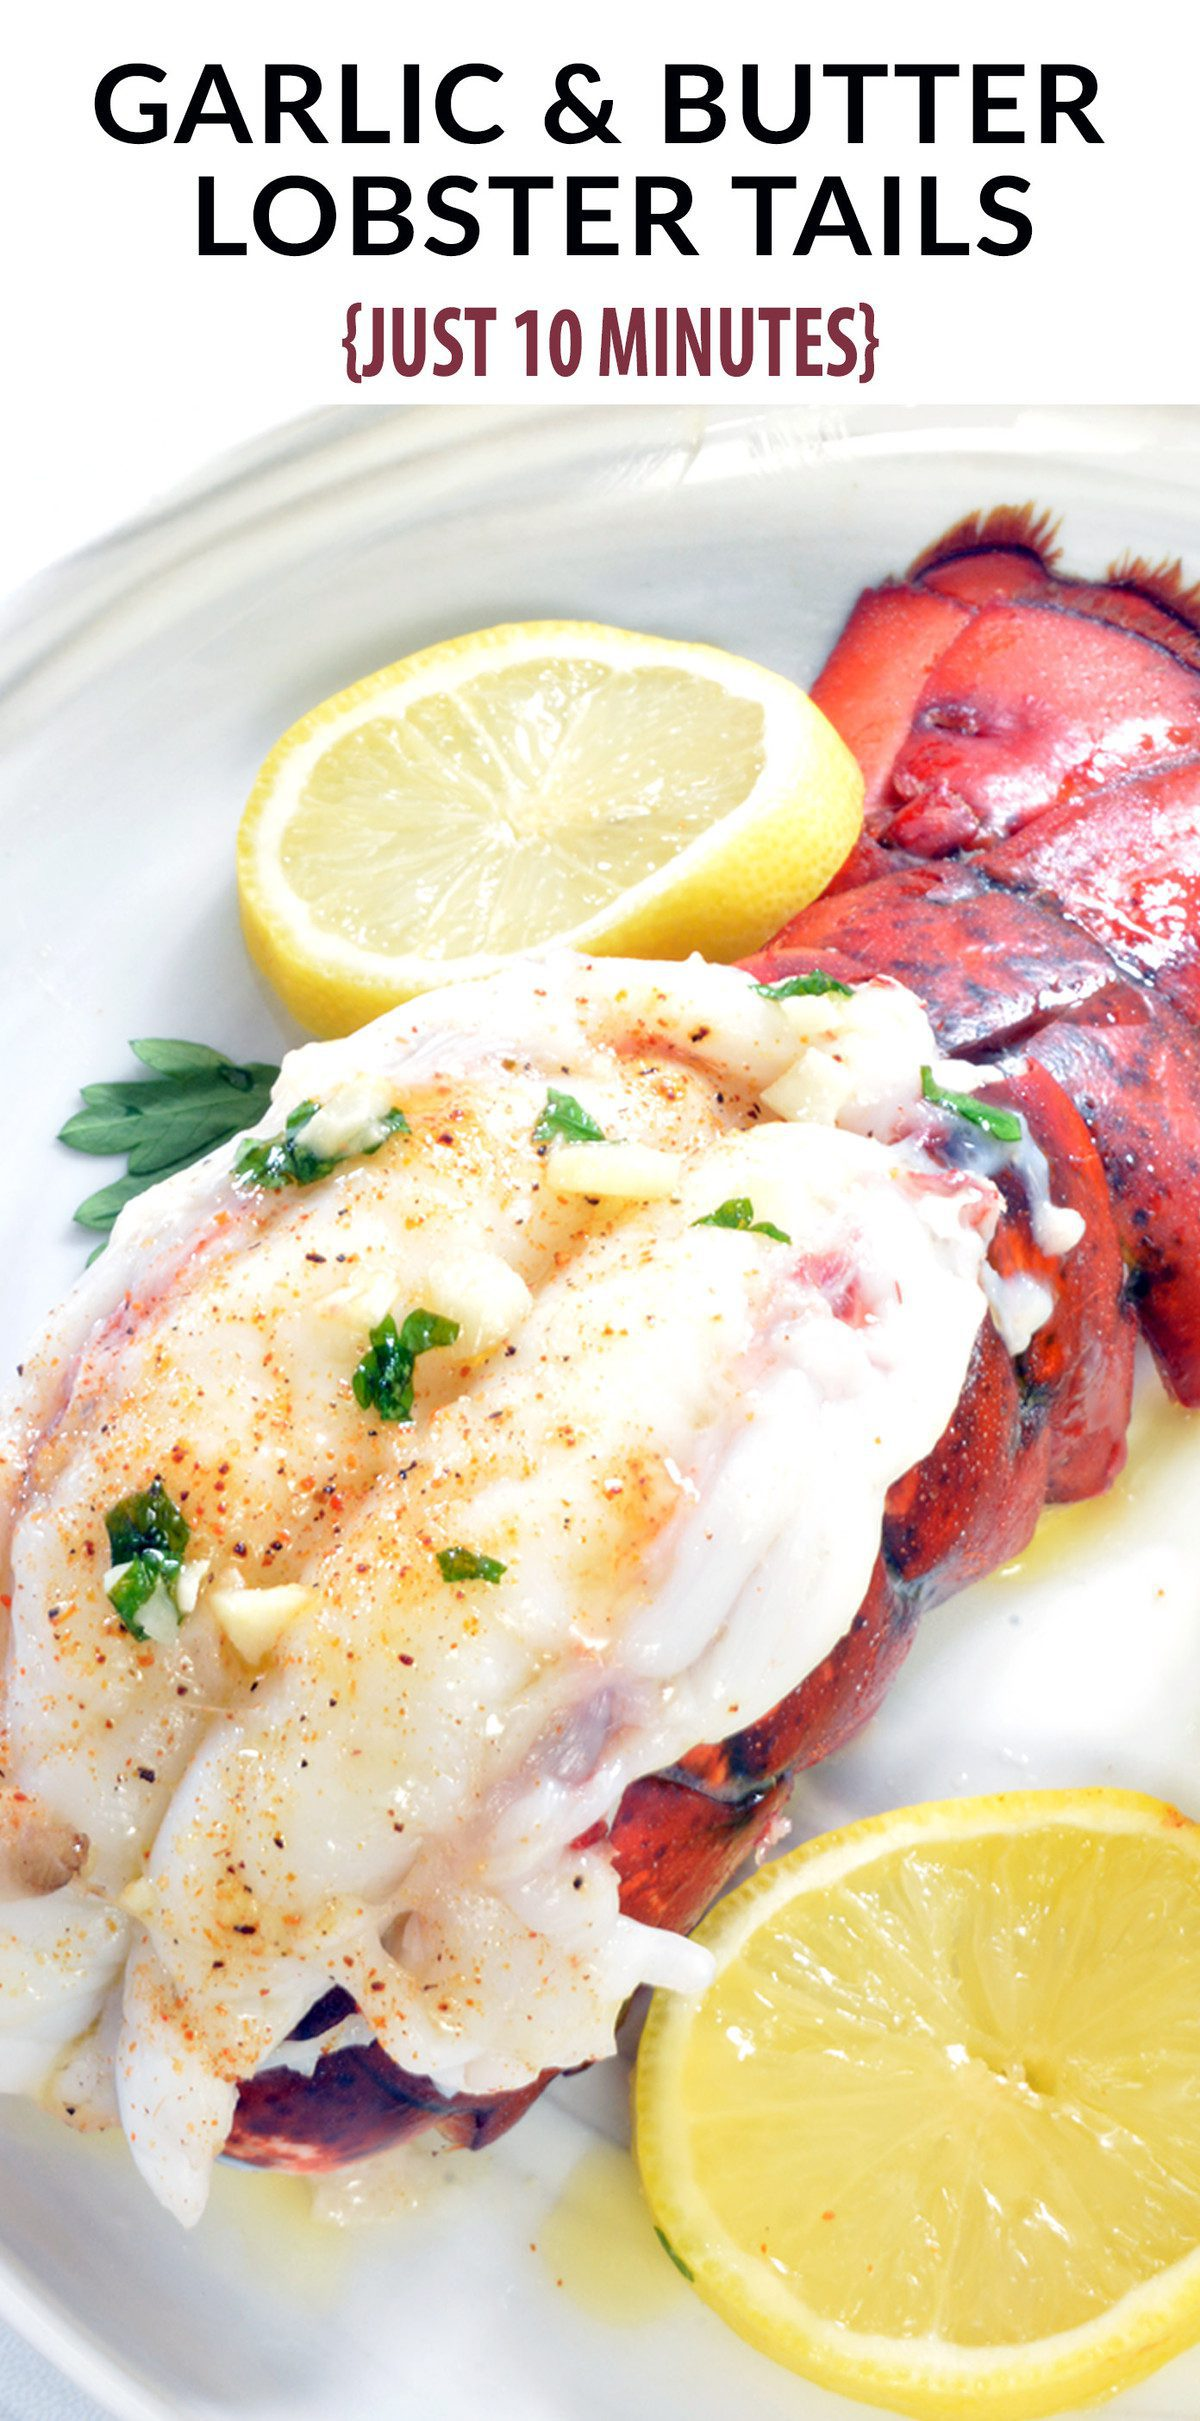 Decadent10-Minute Garlic Butter Baked Lobster Tails Recipe! Buttery lobster drenched in a buttery garlic sauce. Perfect Valentine's Day Dinner idea at half the price. #valentinesday #valentinesdaydinner #valentinesdayrecipe #lobster #lobsterrecipes #garlicbutterrecipes #holidayrecipes #10minuterecipes #10minutedinner #fancydinnerrecipes